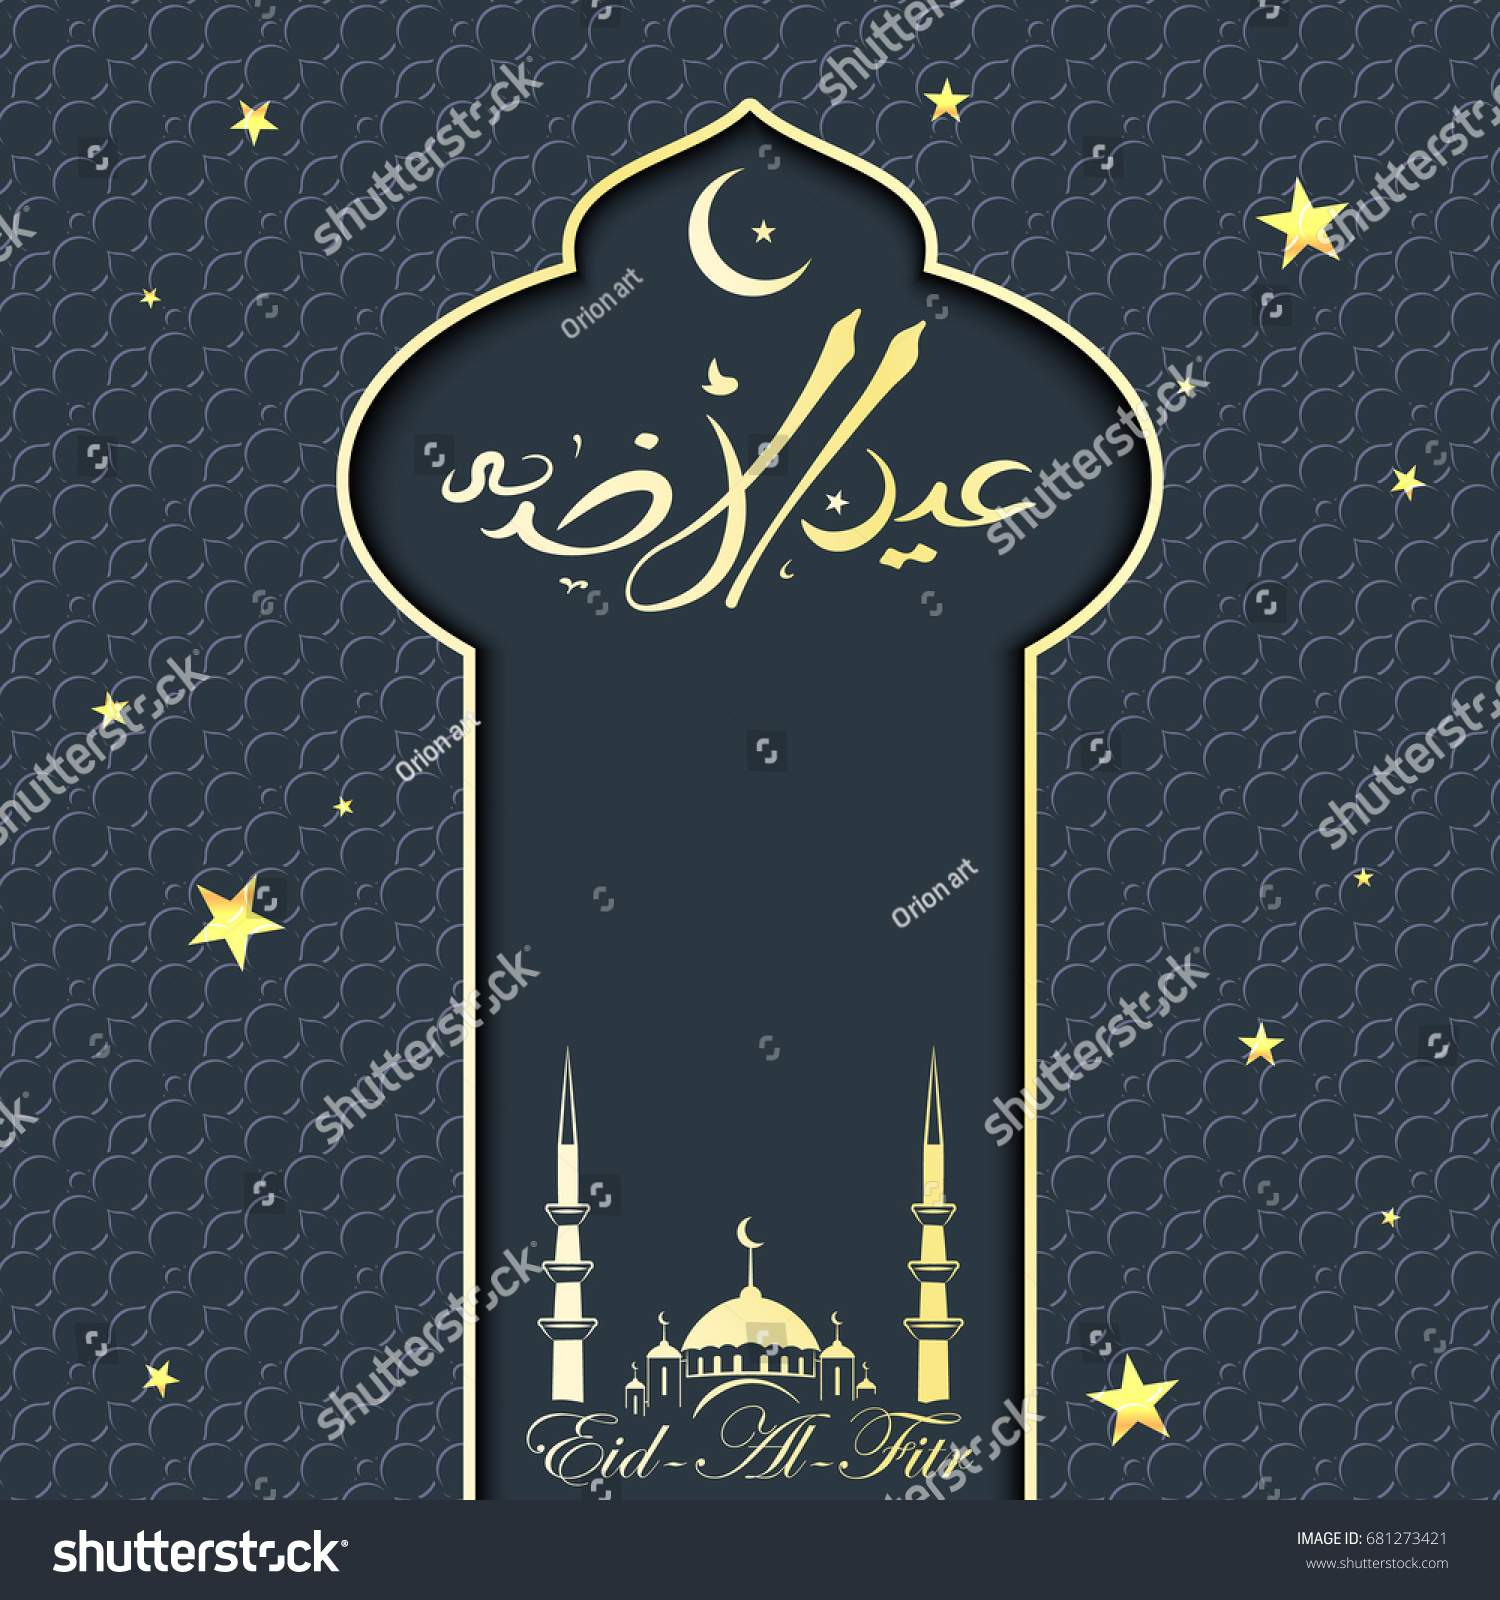 Eid al adha greeting cards religious stock vector 681273421 eid al adha greeting cards religious themed background retro arabic text eid al adha kristyandbryce Image collections